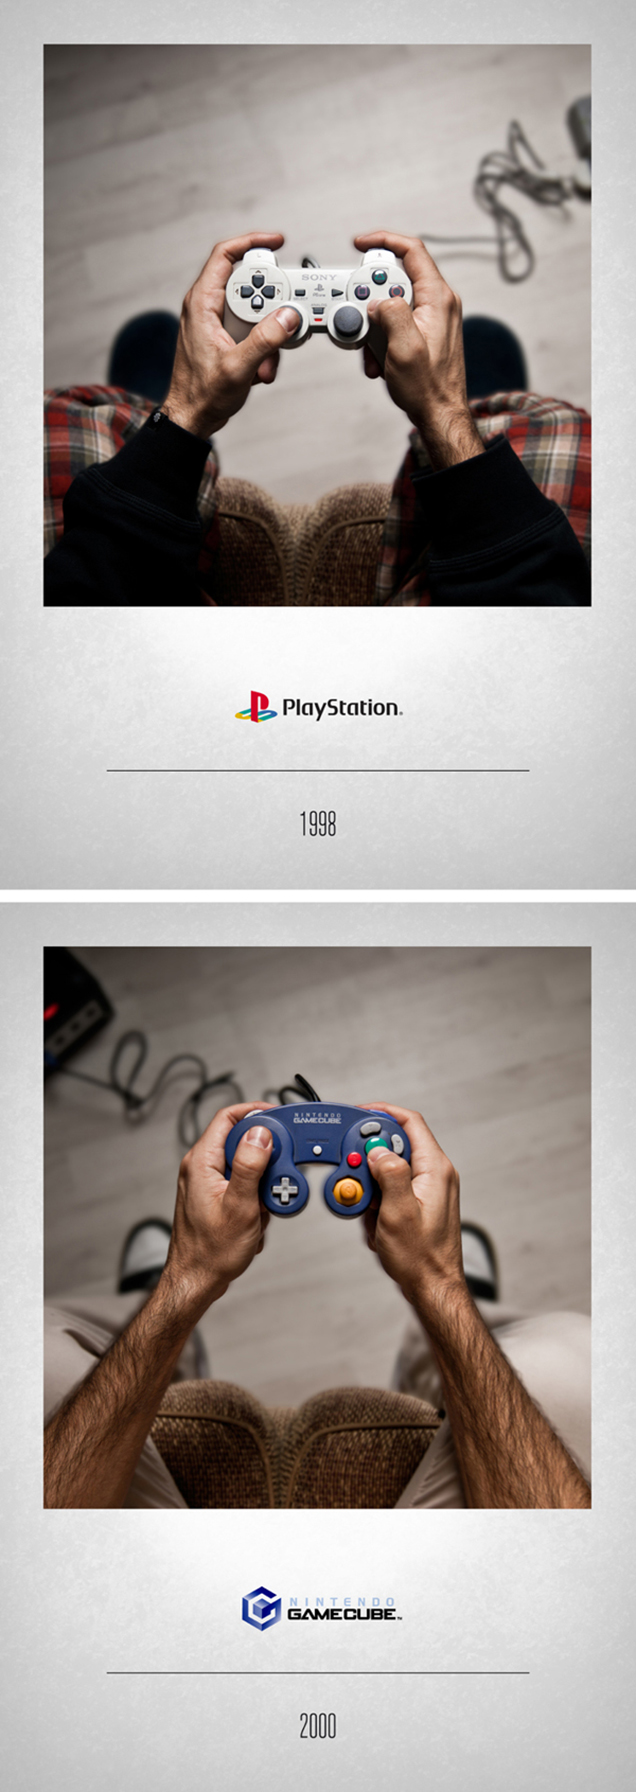 game-consoles-1998-2000.jpg